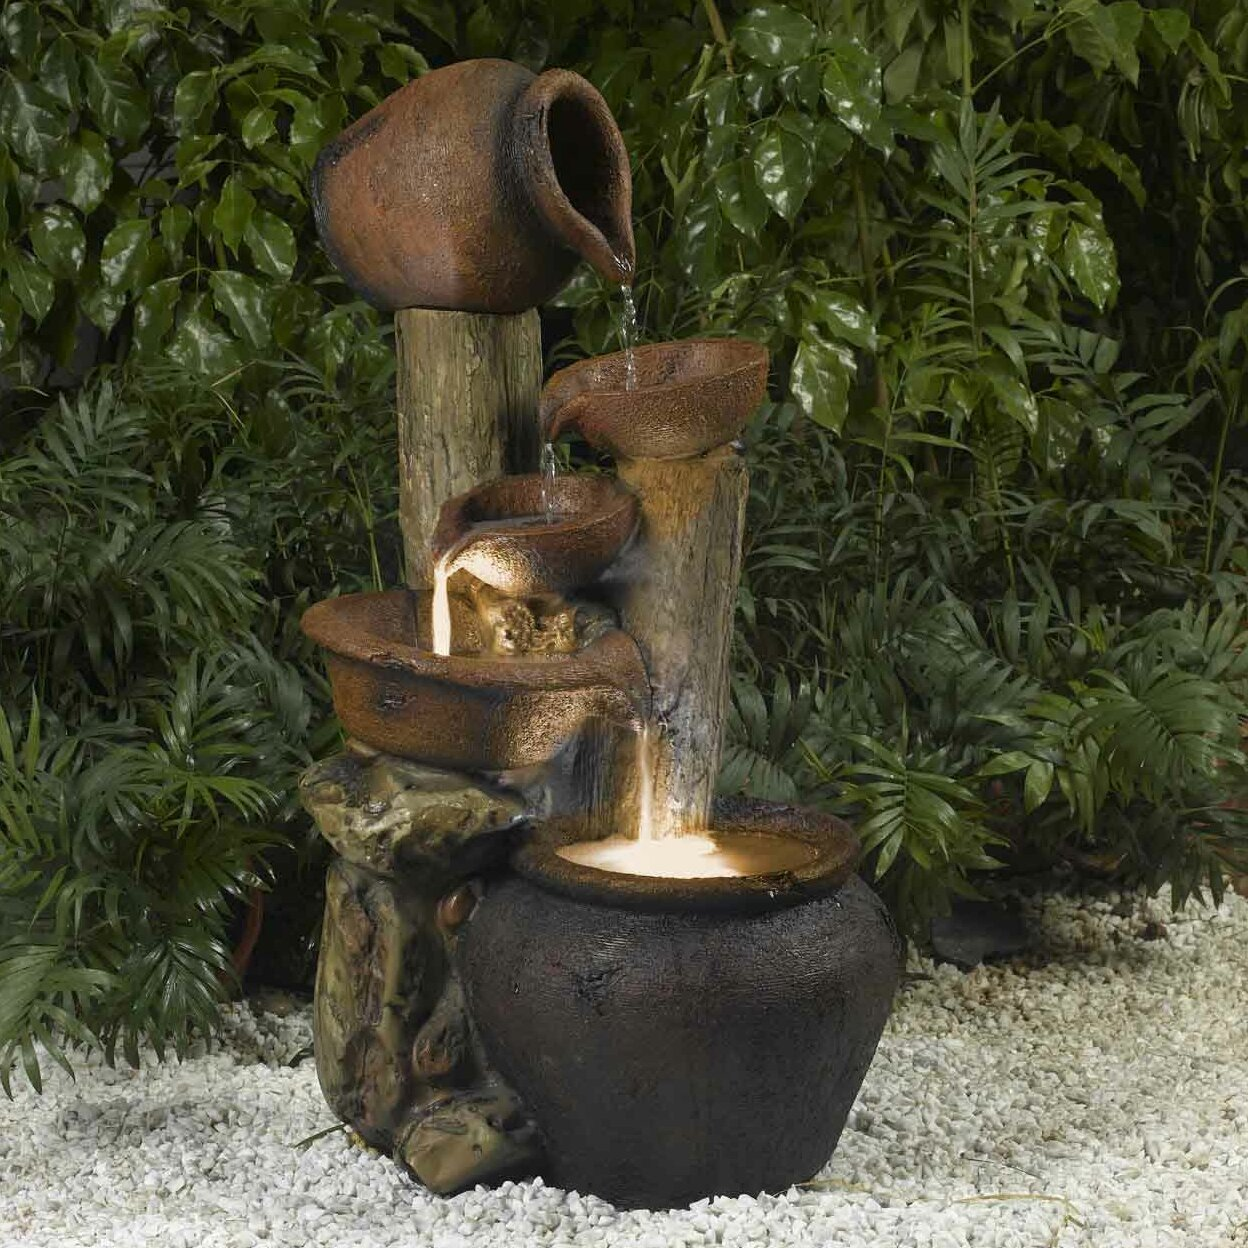 Fountains youll love wayfair resinfiberglass pentole pot indooroutdoor fountain with light workwithnaturefo